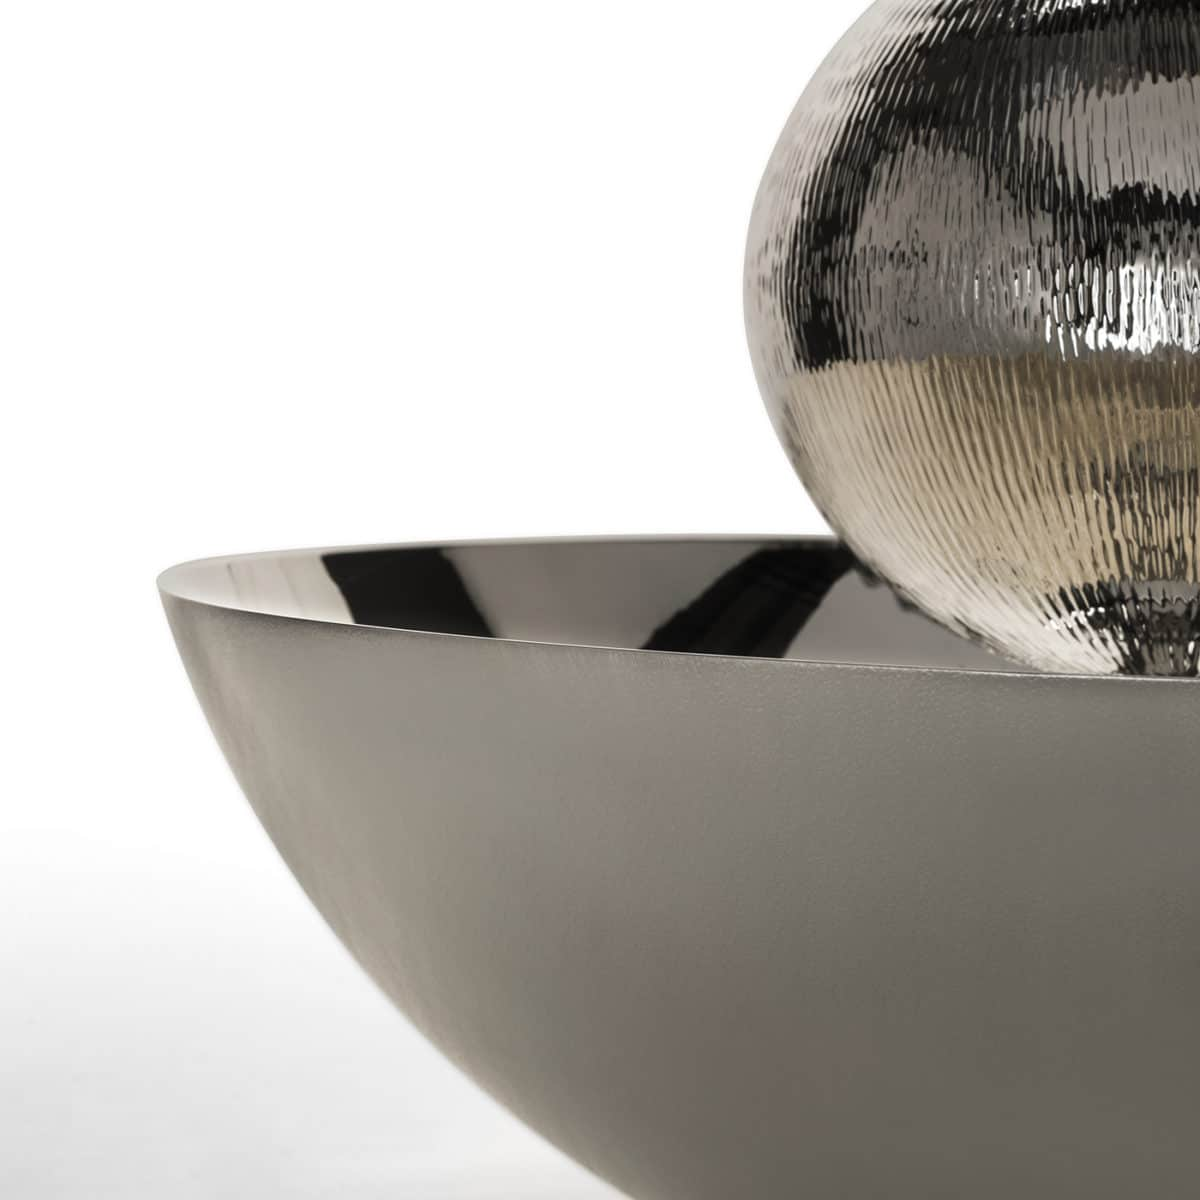 Balliamo Sul Mondo Centerpiece - This unique centerpiece is part of a numbered series and will be sure to make a statement in any contemporary or modern home, thanks to its geometric silhouette and special gleam. Made of silver-plated metal with a varnish finish, its sinuous and smooth surface reflects the surrounding light in a unique way. Its circular base supports a sphere at its center that seems to float in midair. Evoking the cycle of life and the perpetuity of time, this piece will be a standout addition to an entryway or a dining room.